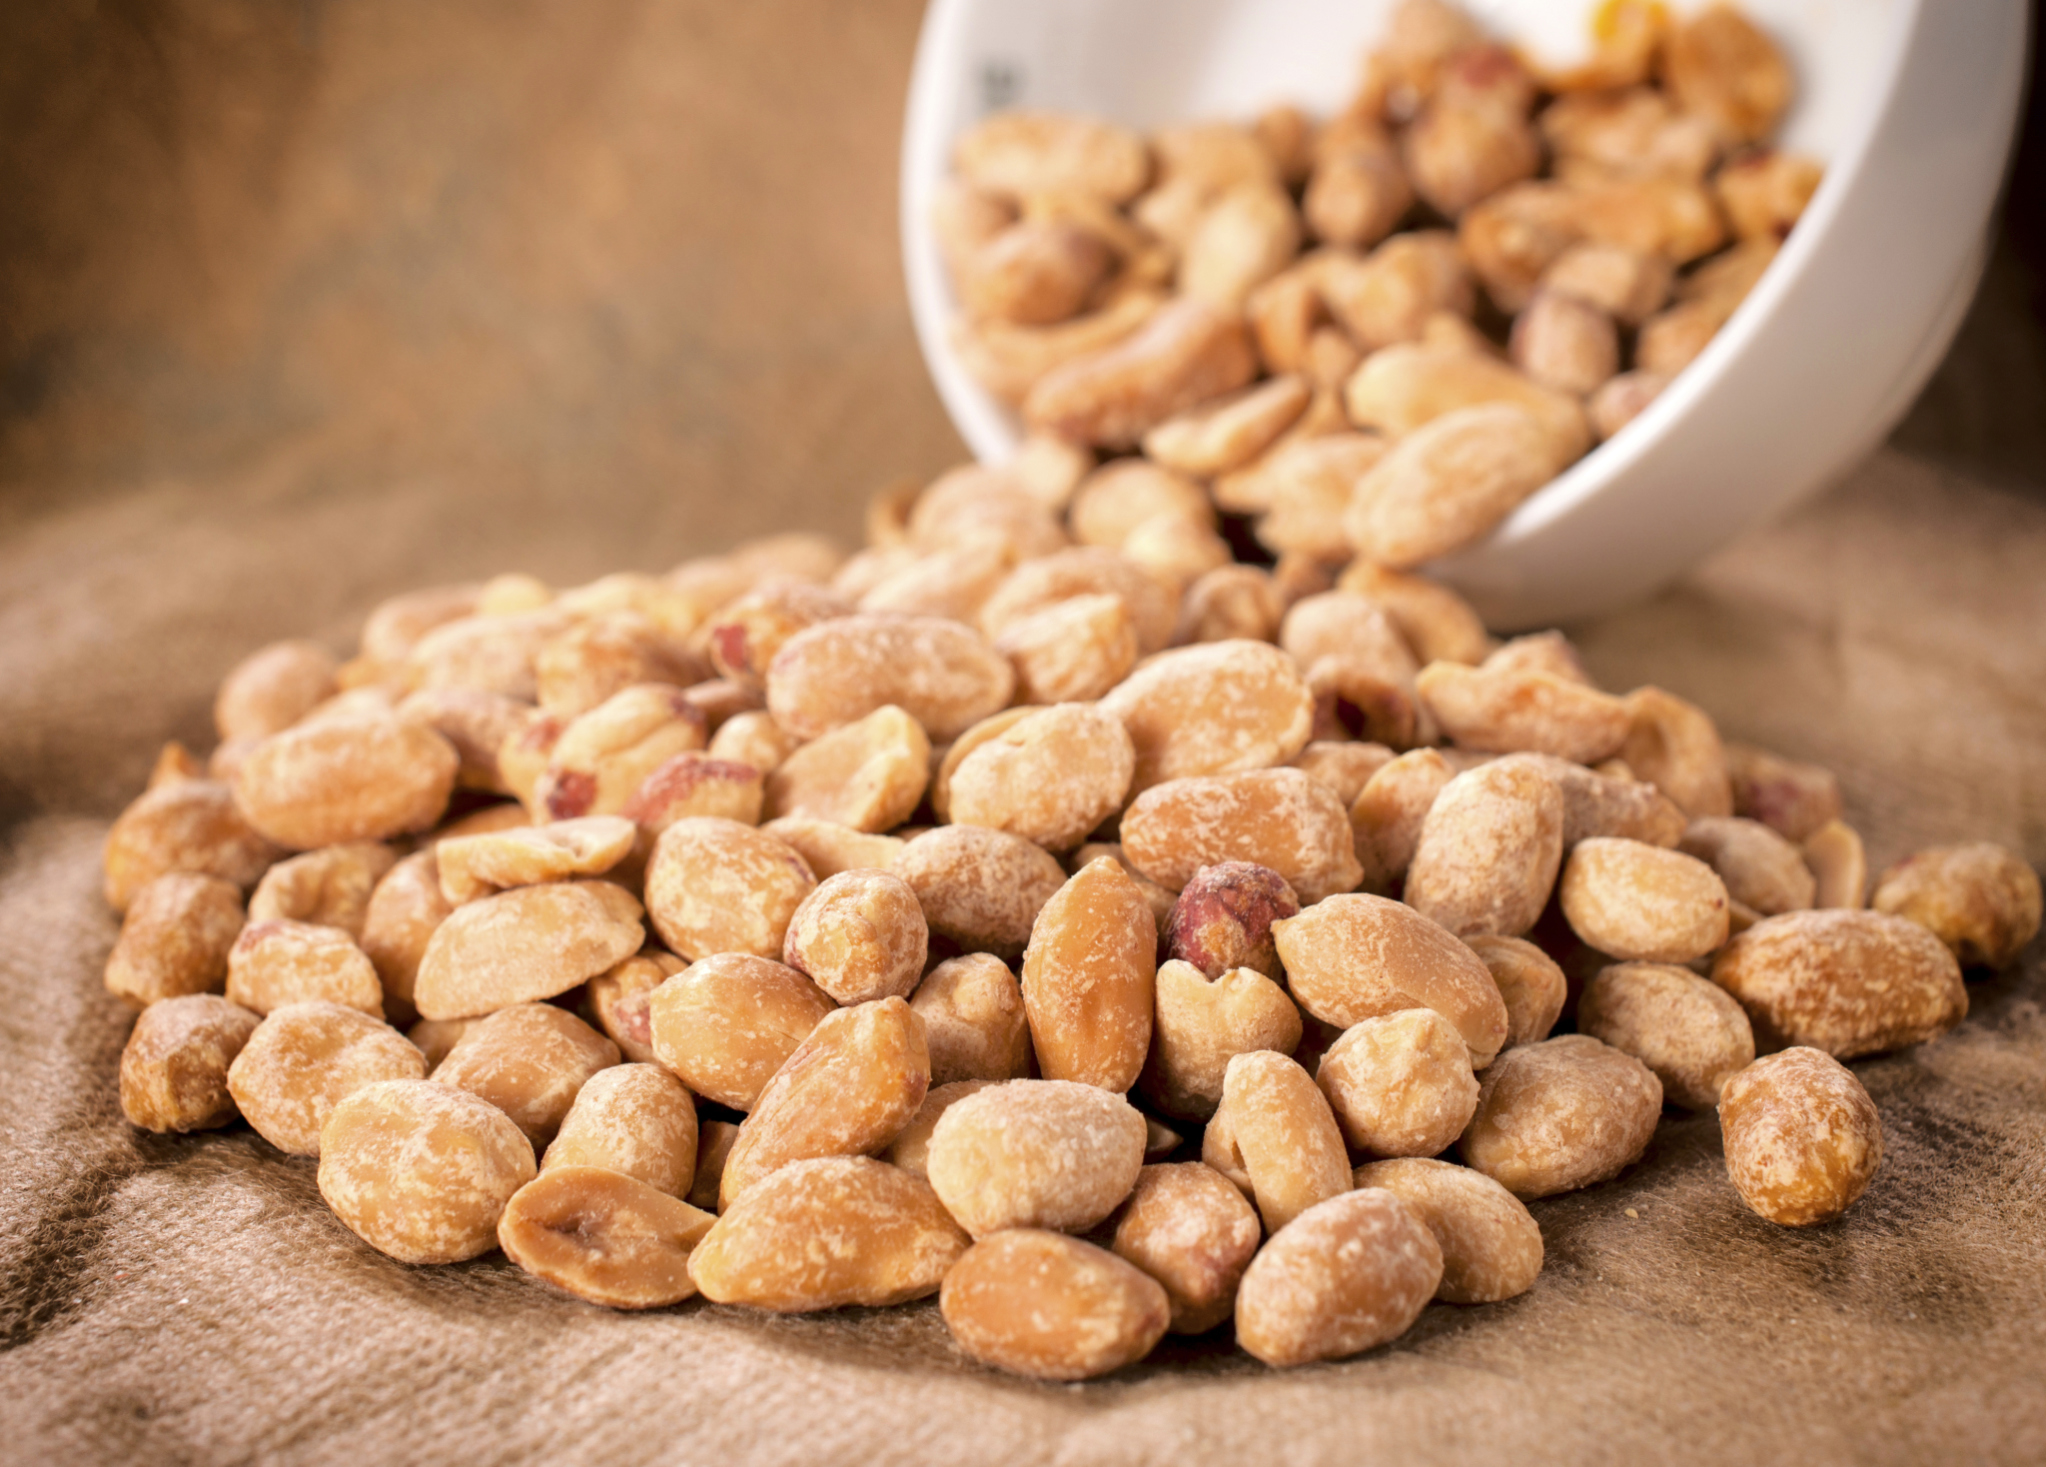 Watch 3 Ways to Dry Peanuts video